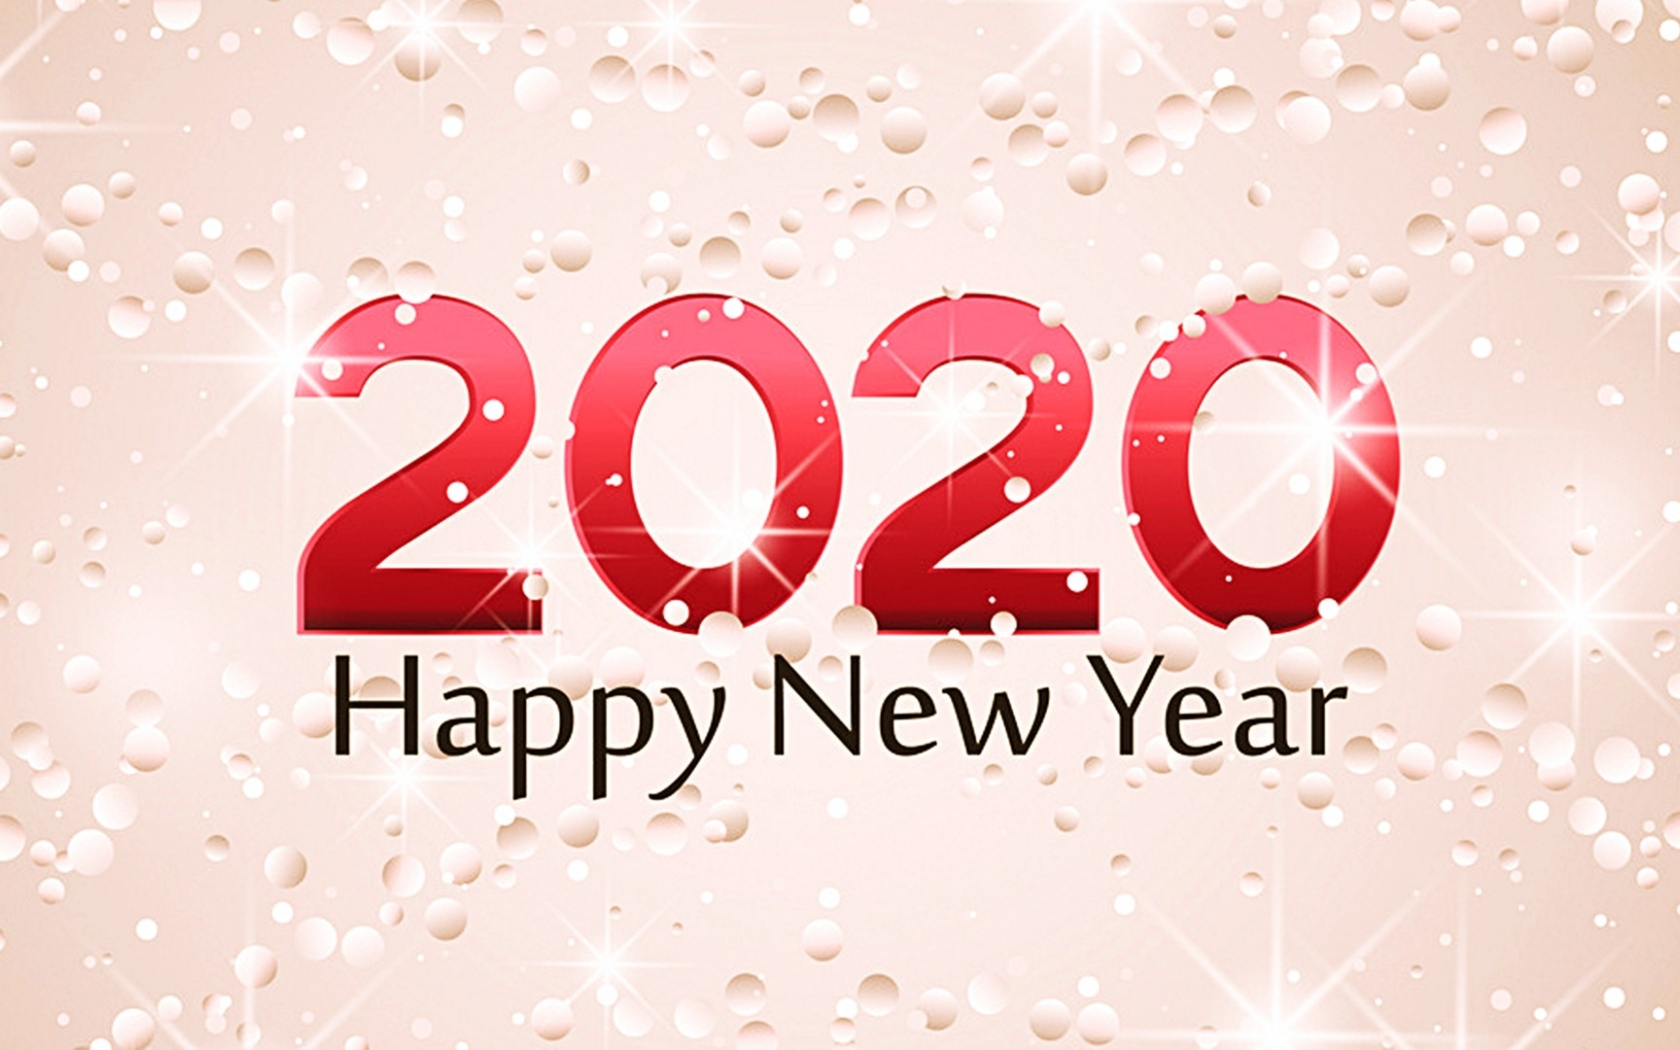 download Happy New Year 2020 Wallpaper HD 45554 Baltana 1680x1050